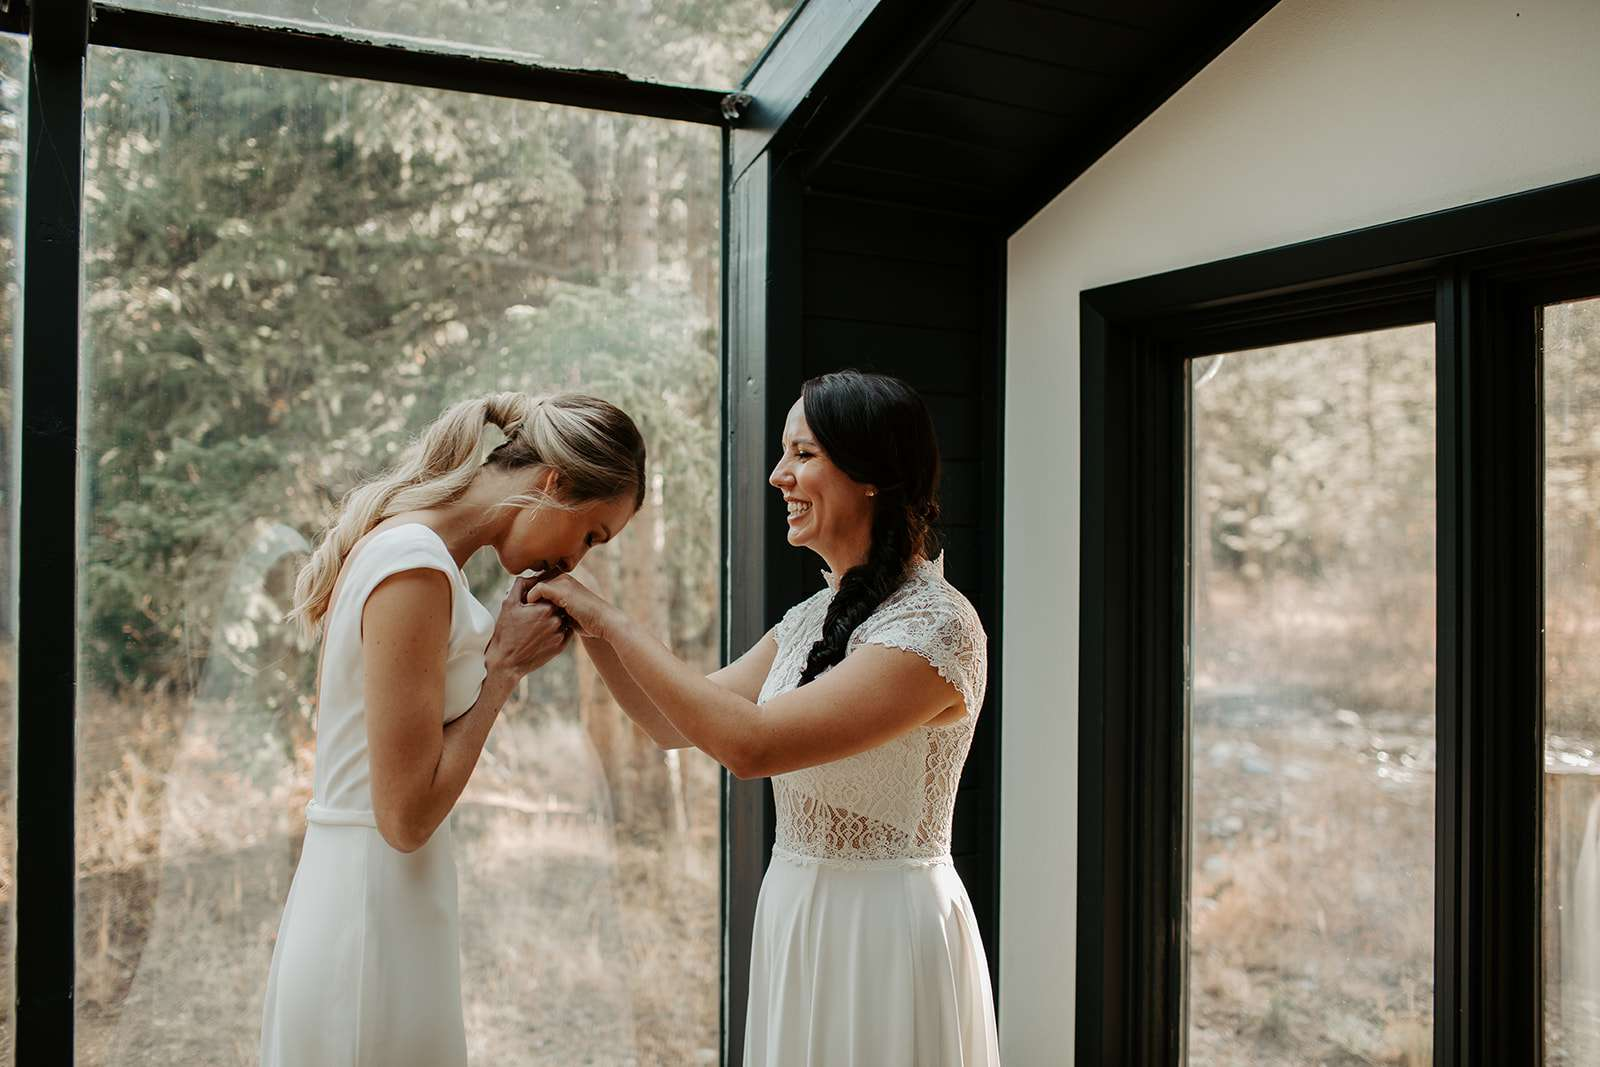 Brides kiss before ceremony